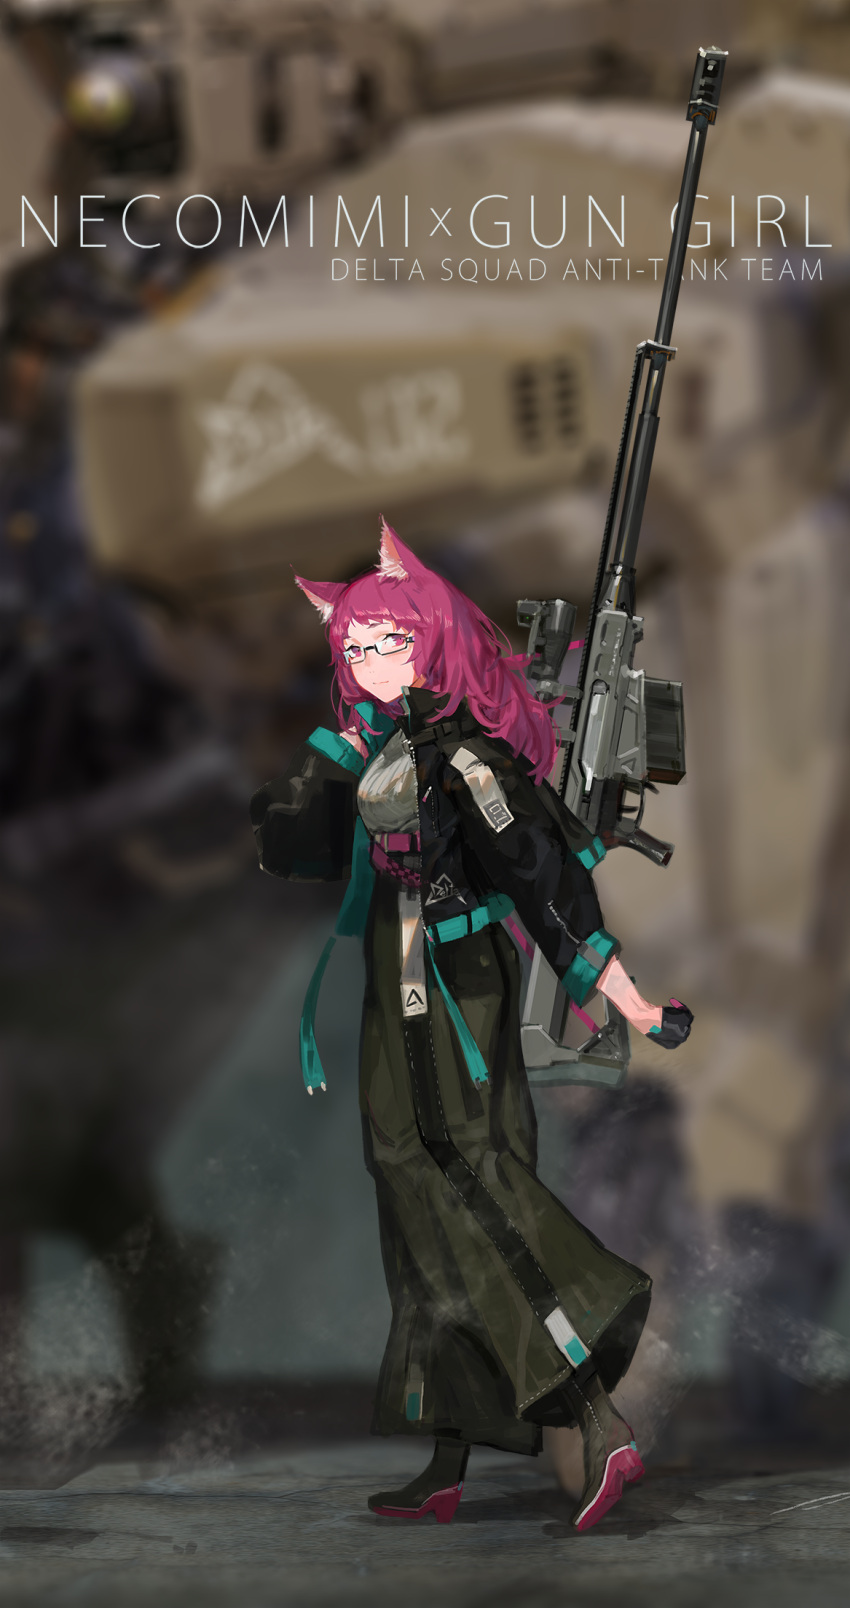 1girl animal_ears anti-materiel_rifle belt boots carrying_over_shoulder cat_ears full_body glasses gloves gun high_heels highres jacket long_hair looking_at_viewer mecha original pink_hair rifle science_fiction smile sniper_rifle tommy830219 walking wall weapon